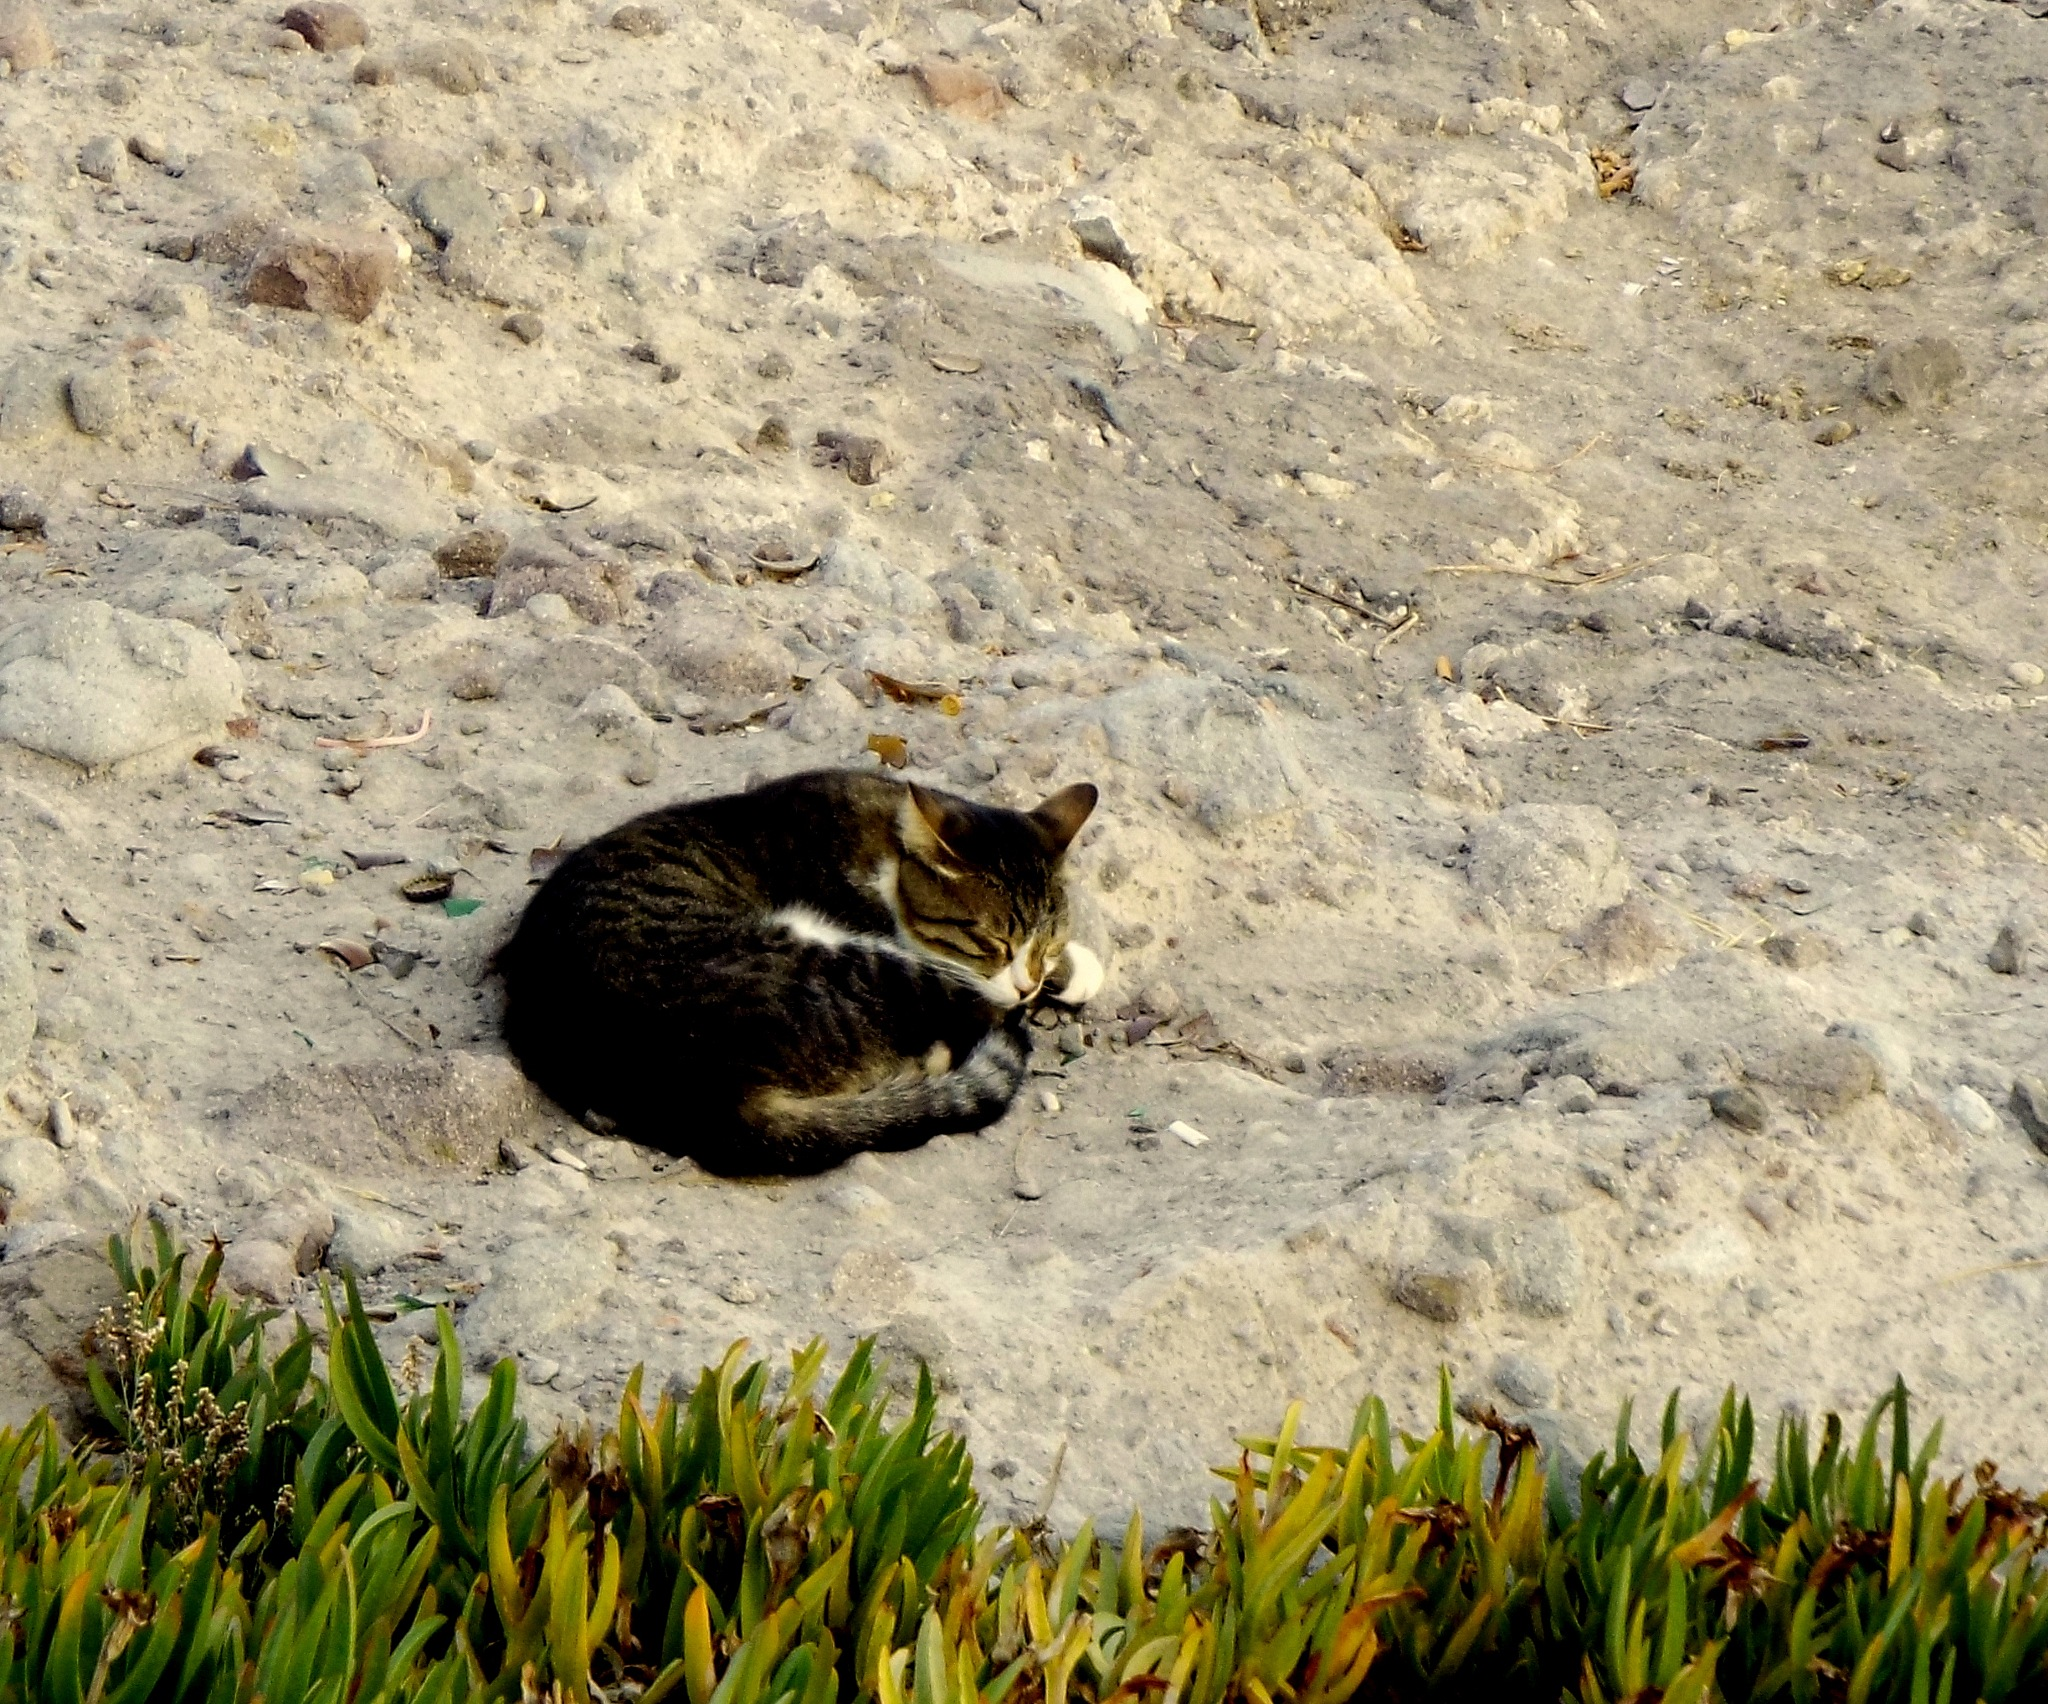 CAT ON THE ROCK by Akin Saner